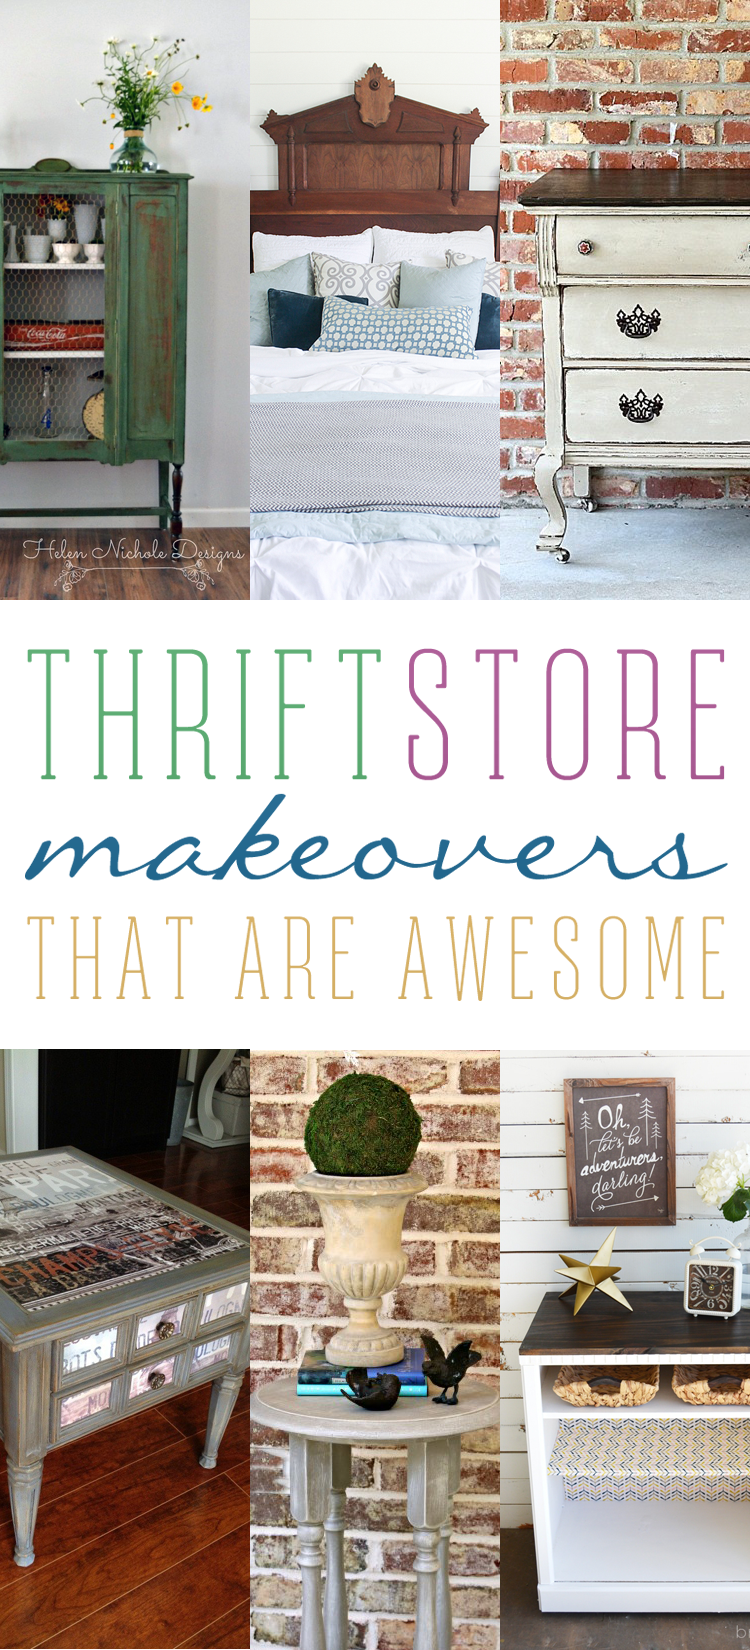 http://thecottagemarket.com/wp-content/uploads/2015/10/makeovers-tower-001.png